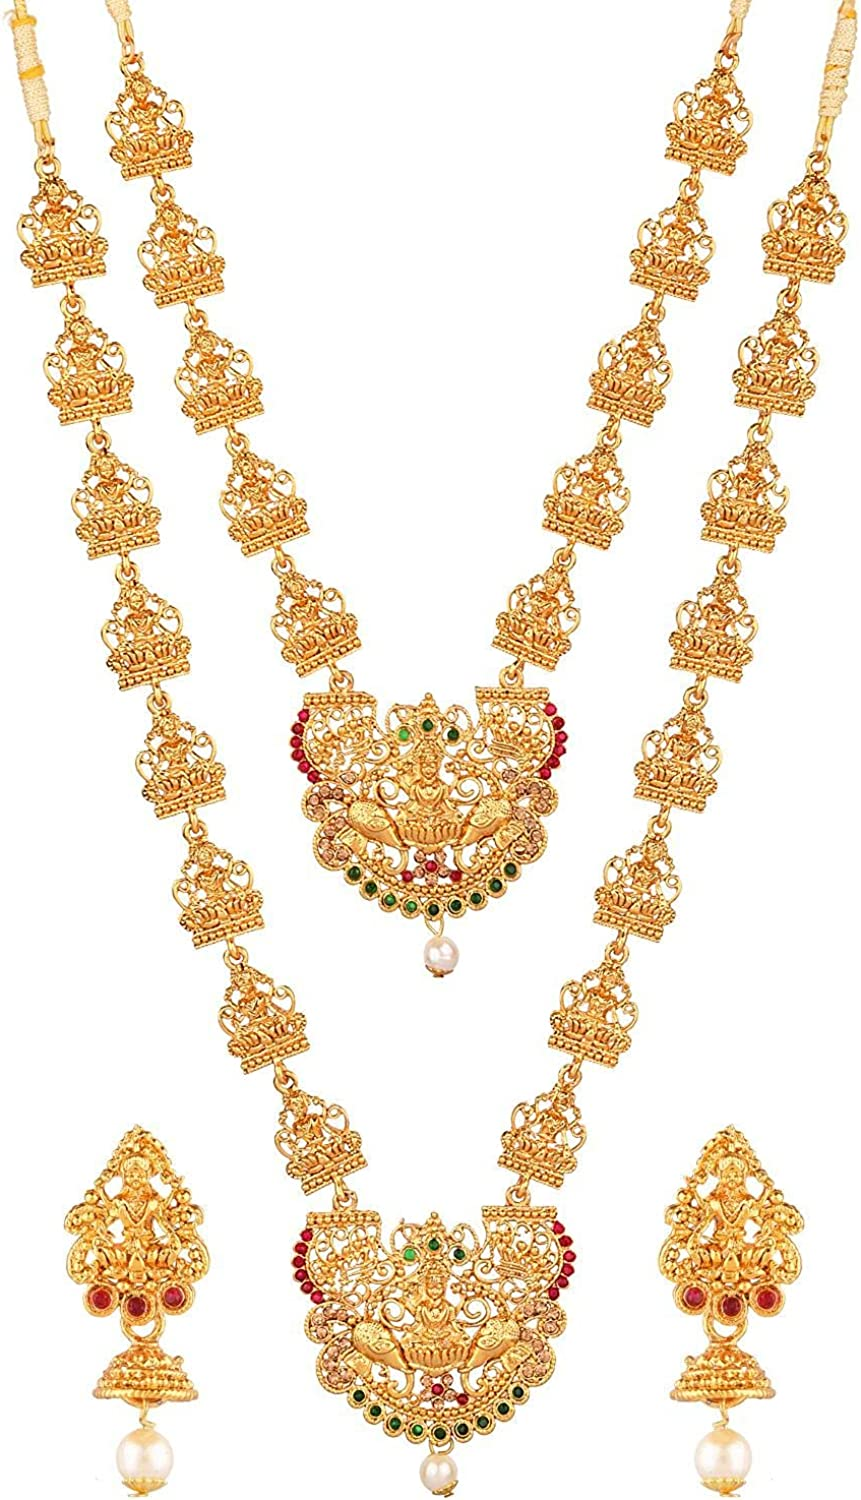 Efulgenz Indian Jewelry Bollywood Traditional Crystal Choker Necklaces Earrings Wedding Jewelry Set for Women